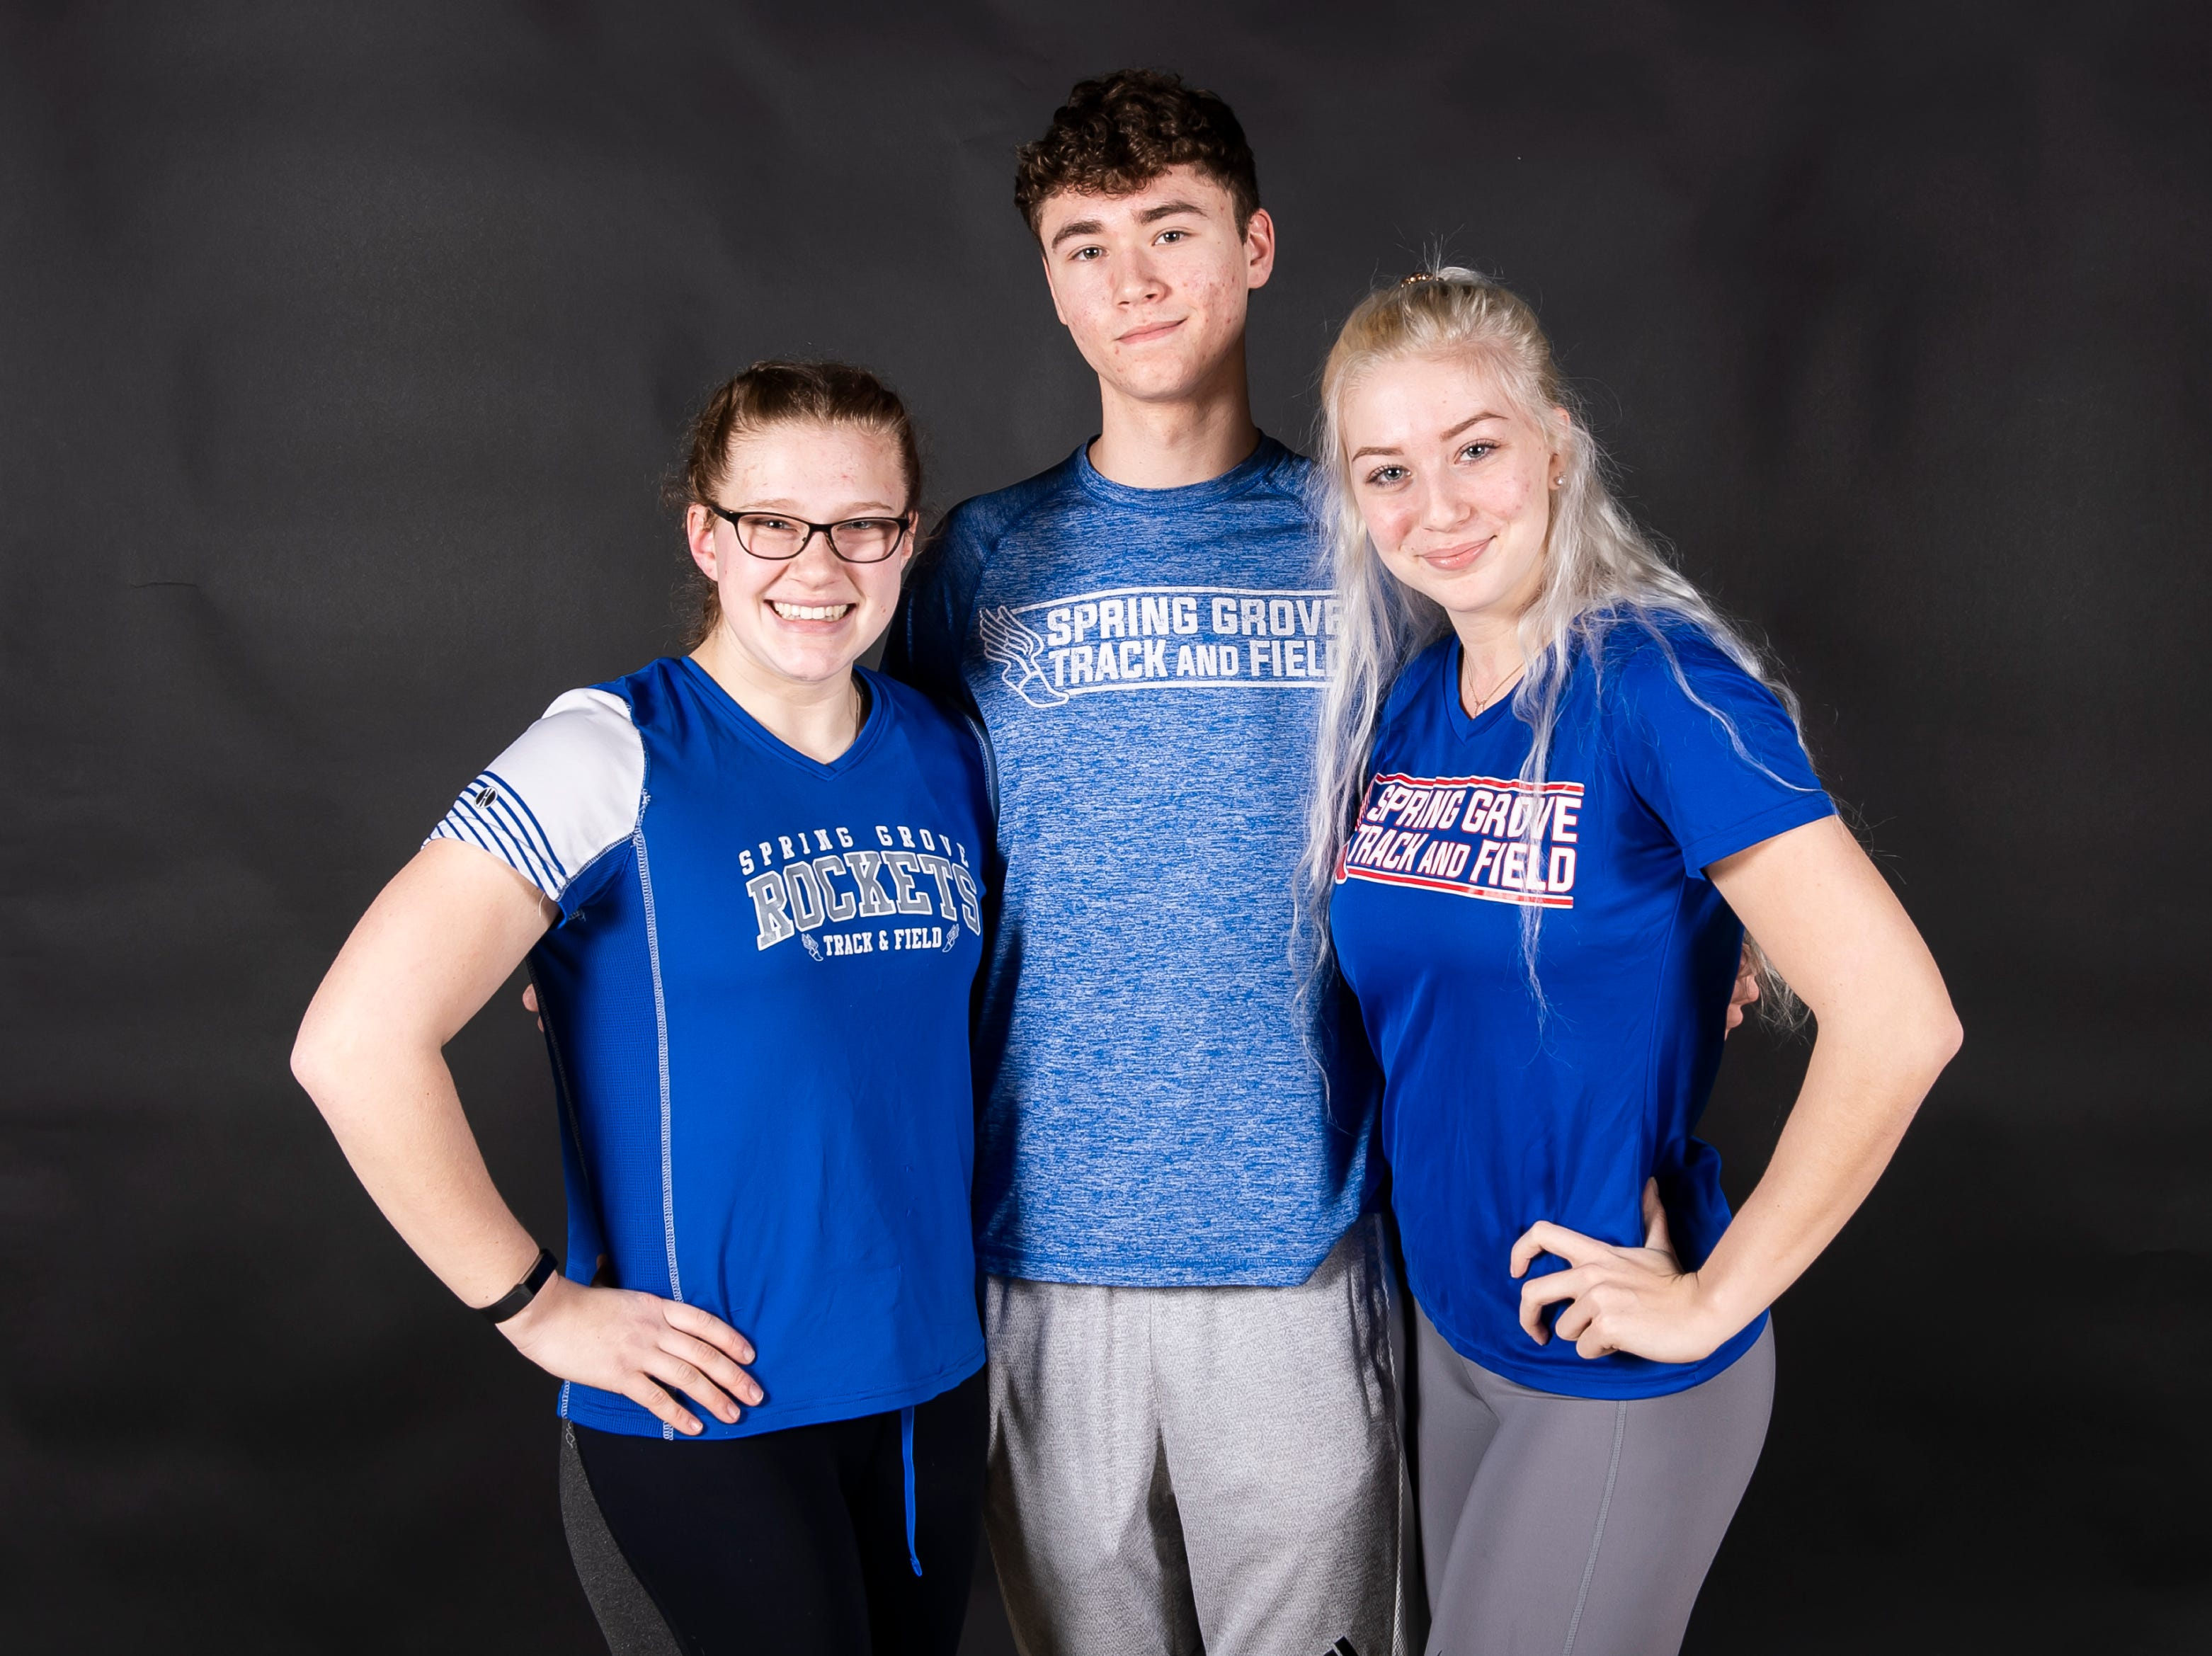 (From left) Spring Grove track and field athletes Ashley Dressler, Colson Martin and Angel Rohrbaugh pose in the GameTimePA photo booth during spring sports media day in York Sunday, March 10, 2019.